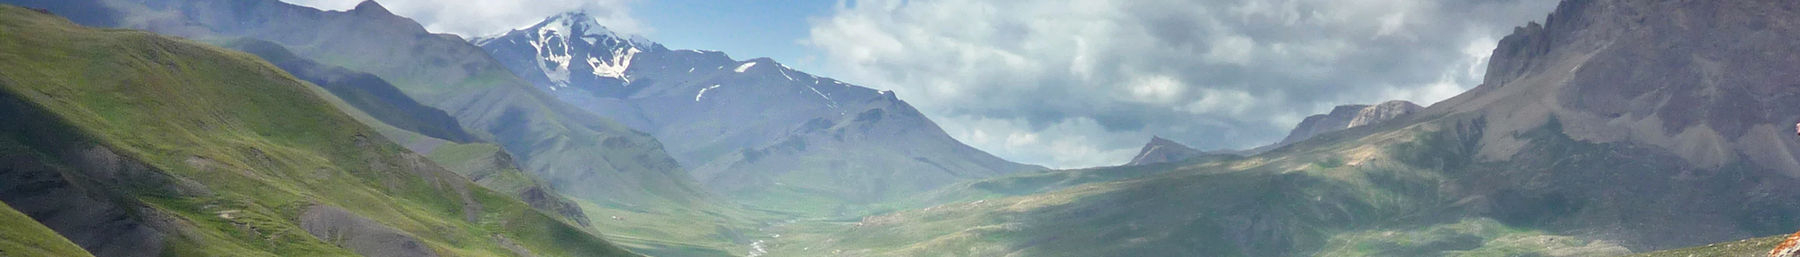 Landscape of the Khinalug valley in Azerbaijan